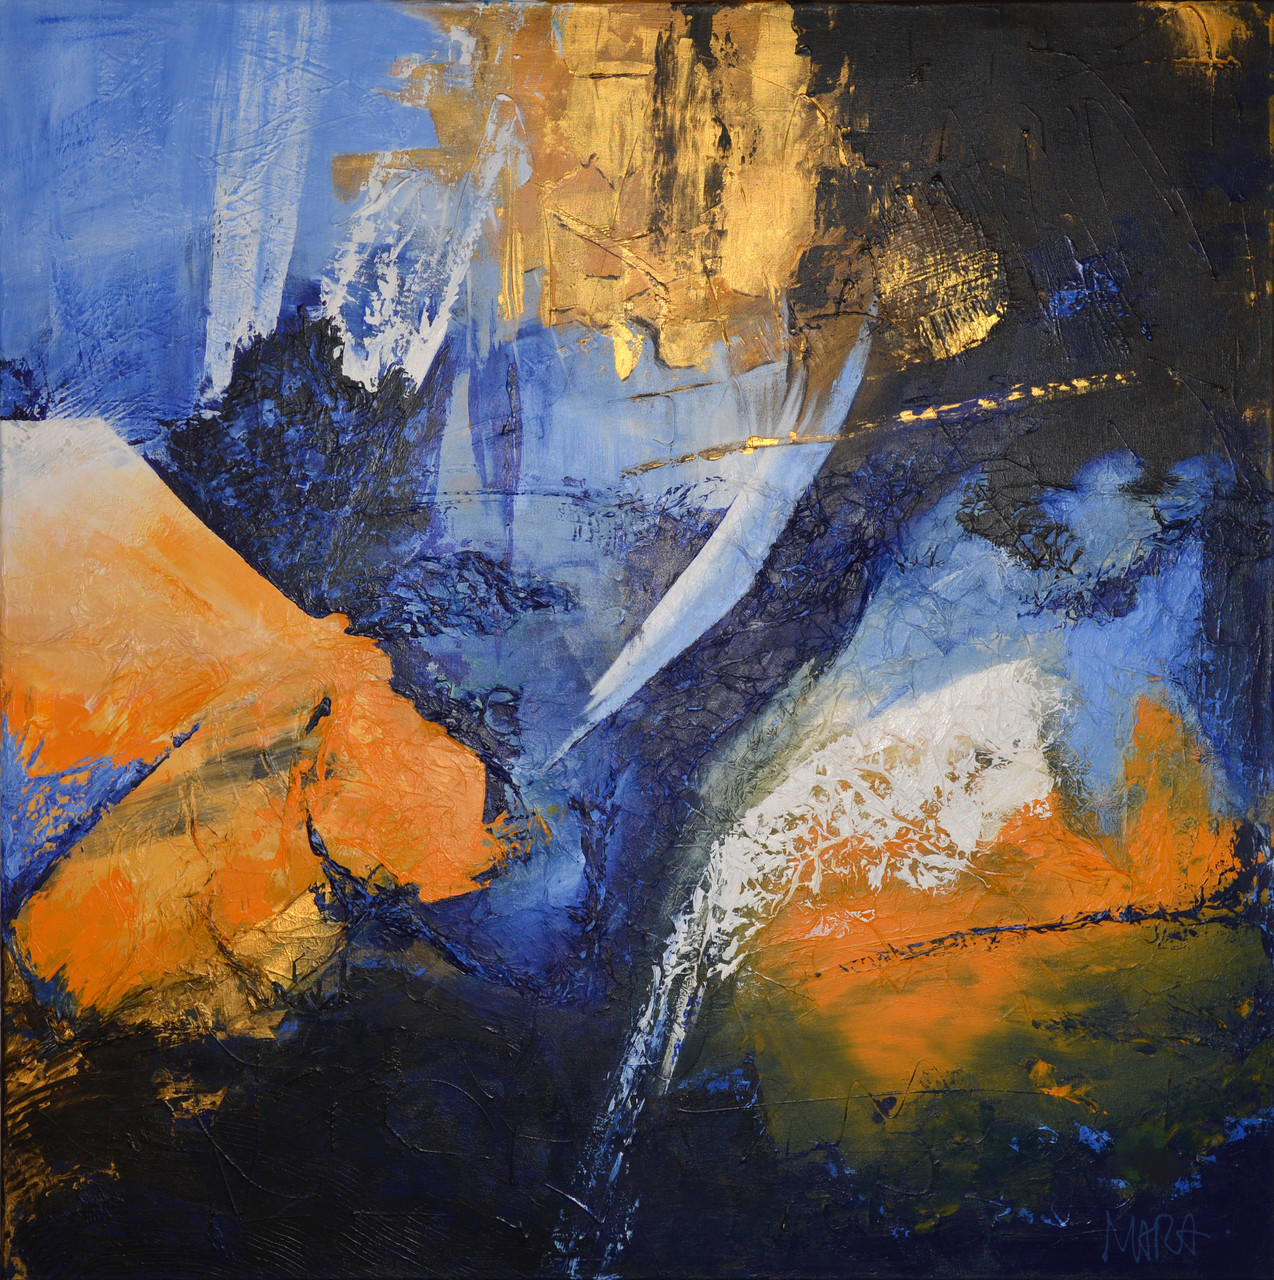 Opening - 100x100 cm - sold